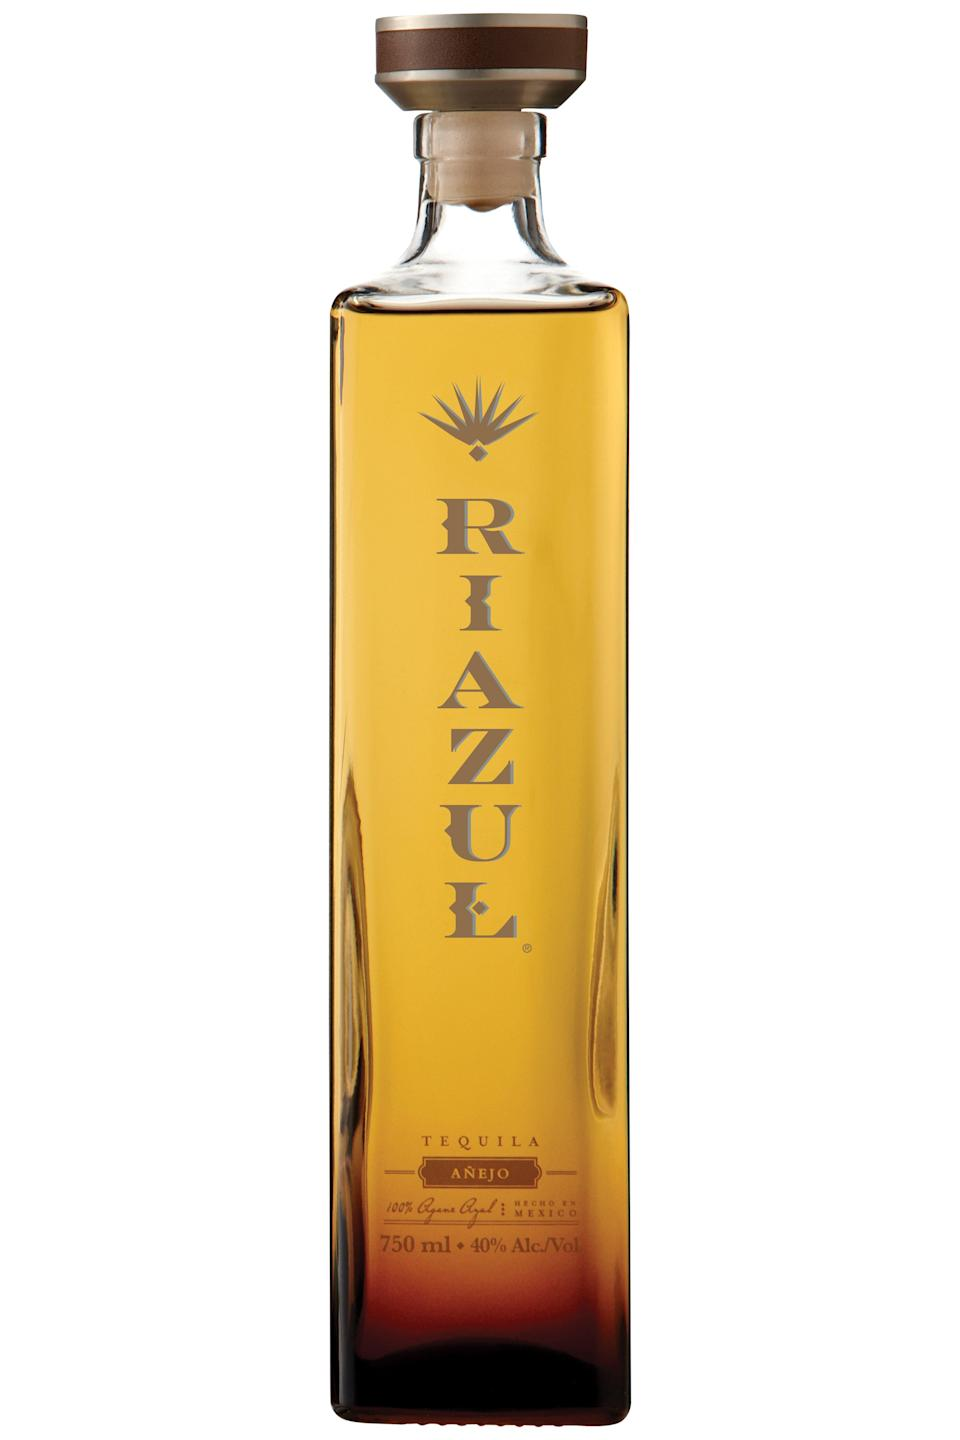 """<p><strong>tequila</strong></p><p>drizly.com</p><p><strong>$58.95</strong></p><p><a href=""""https://go.redirectingat.com?id=74968X1596630&url=https%3A%2F%2Fdrizly.com%2Friazul-tequila-anejo%2Fp9454&sref=https%3A%2F%2Fwww.townandcountrymag.com%2Fleisure%2Fdrinks%2Fg1458%2Fsipping-tequilas%2F"""" rel=""""nofollow noopener"""" target=""""_blank"""" data-ylk=""""slk:Shop Now"""" class=""""link rapid-noclick-resp"""">Shop Now</a></p><p>Riazul's Añejo tequila is distilled twice and then aged for two years in Cognac barrels. The unique barrels, made from wood indigenous to a forest in burgundy noted for naturally ingrained vanilla tannins, separate this tequila from the rest of the bunch.</p>"""